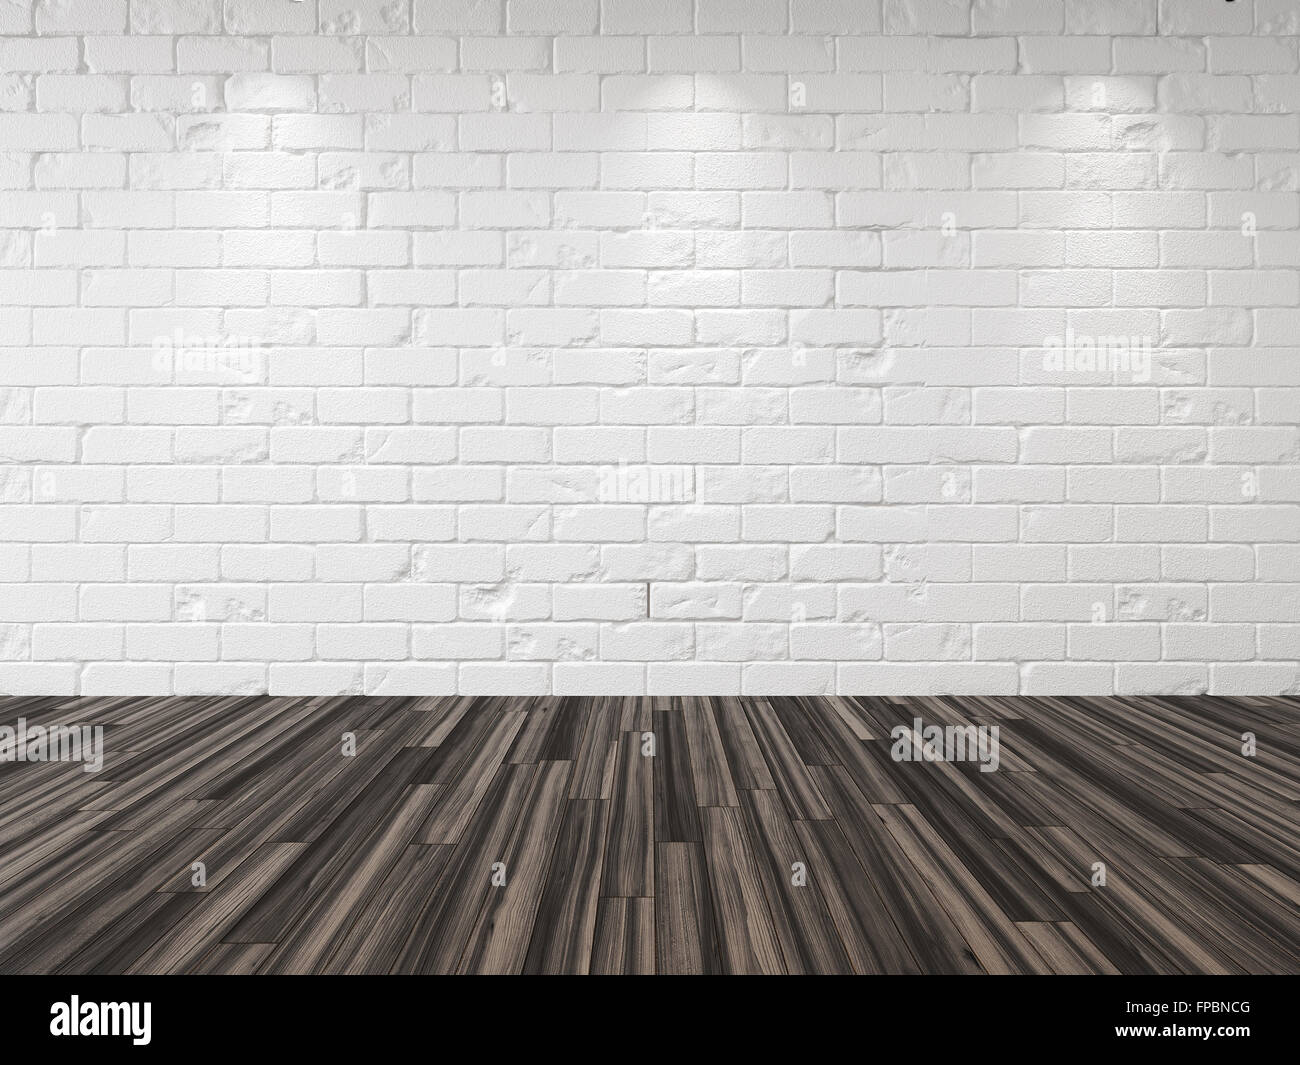 Empty whitewashed brick room with recessed down lights illuminating the brick wall and a hardwood parquet floor - Stock Image